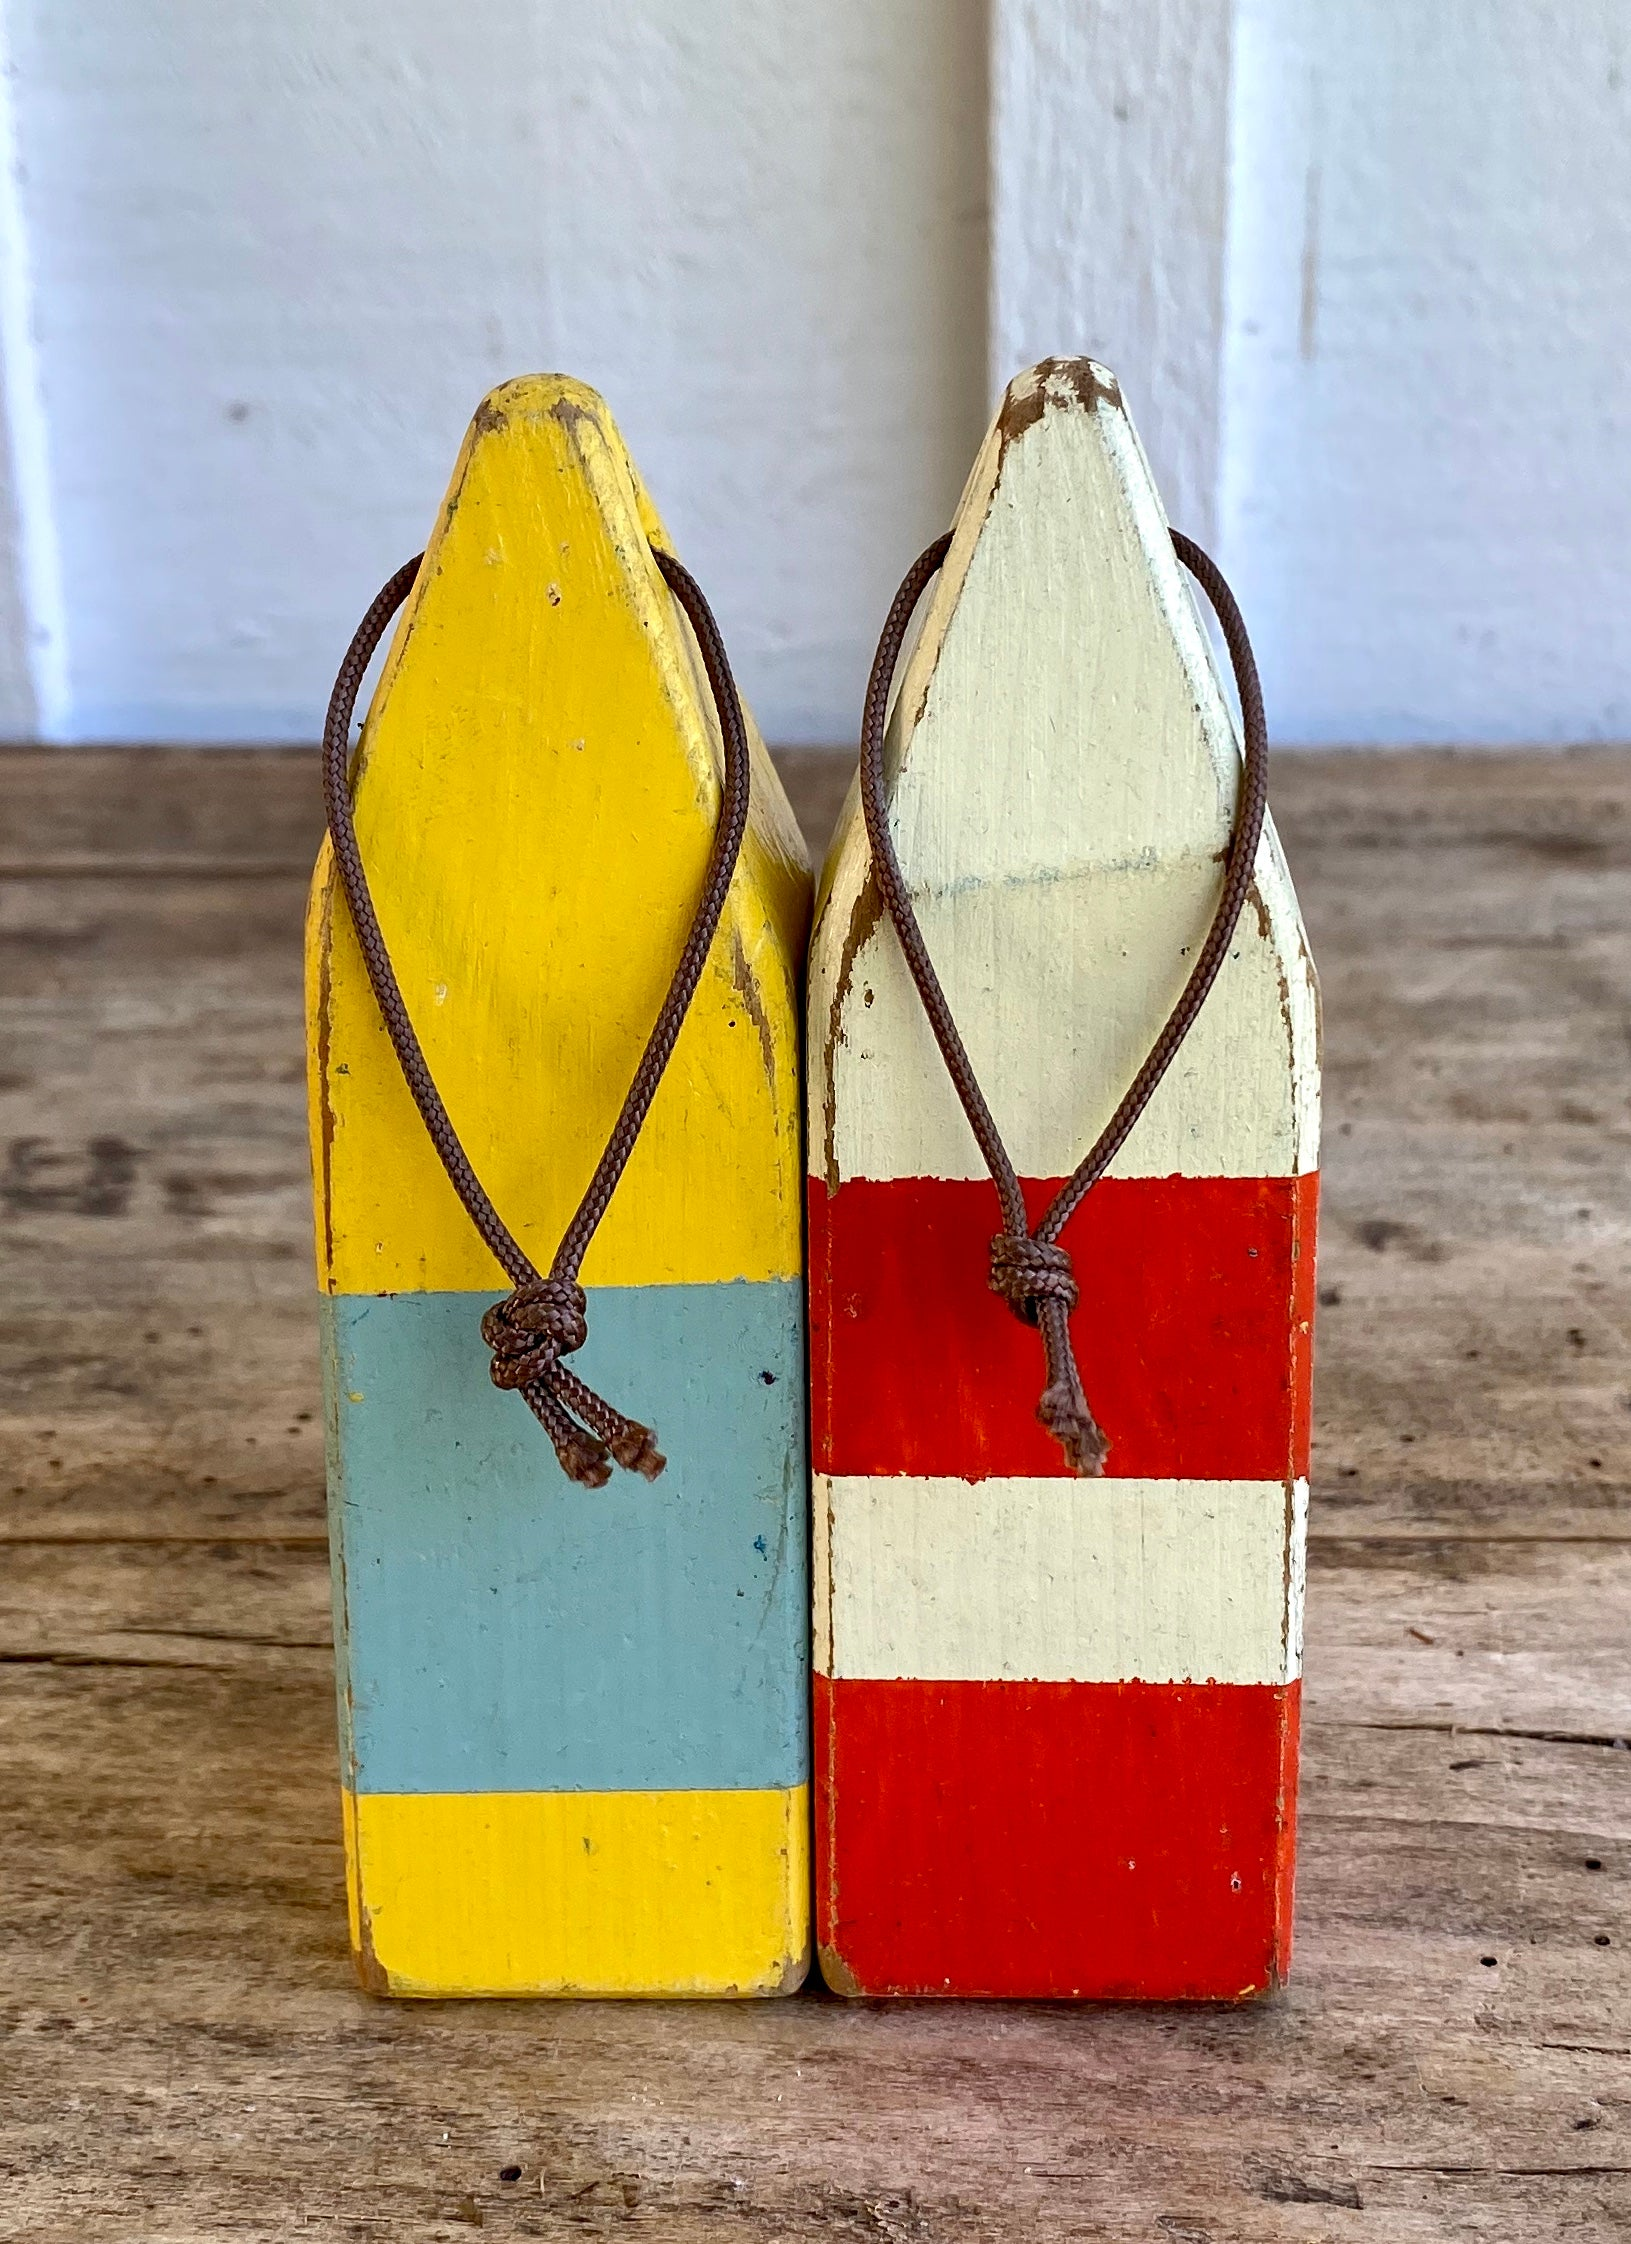 Charming Maine Lobster Buoy and Mini's